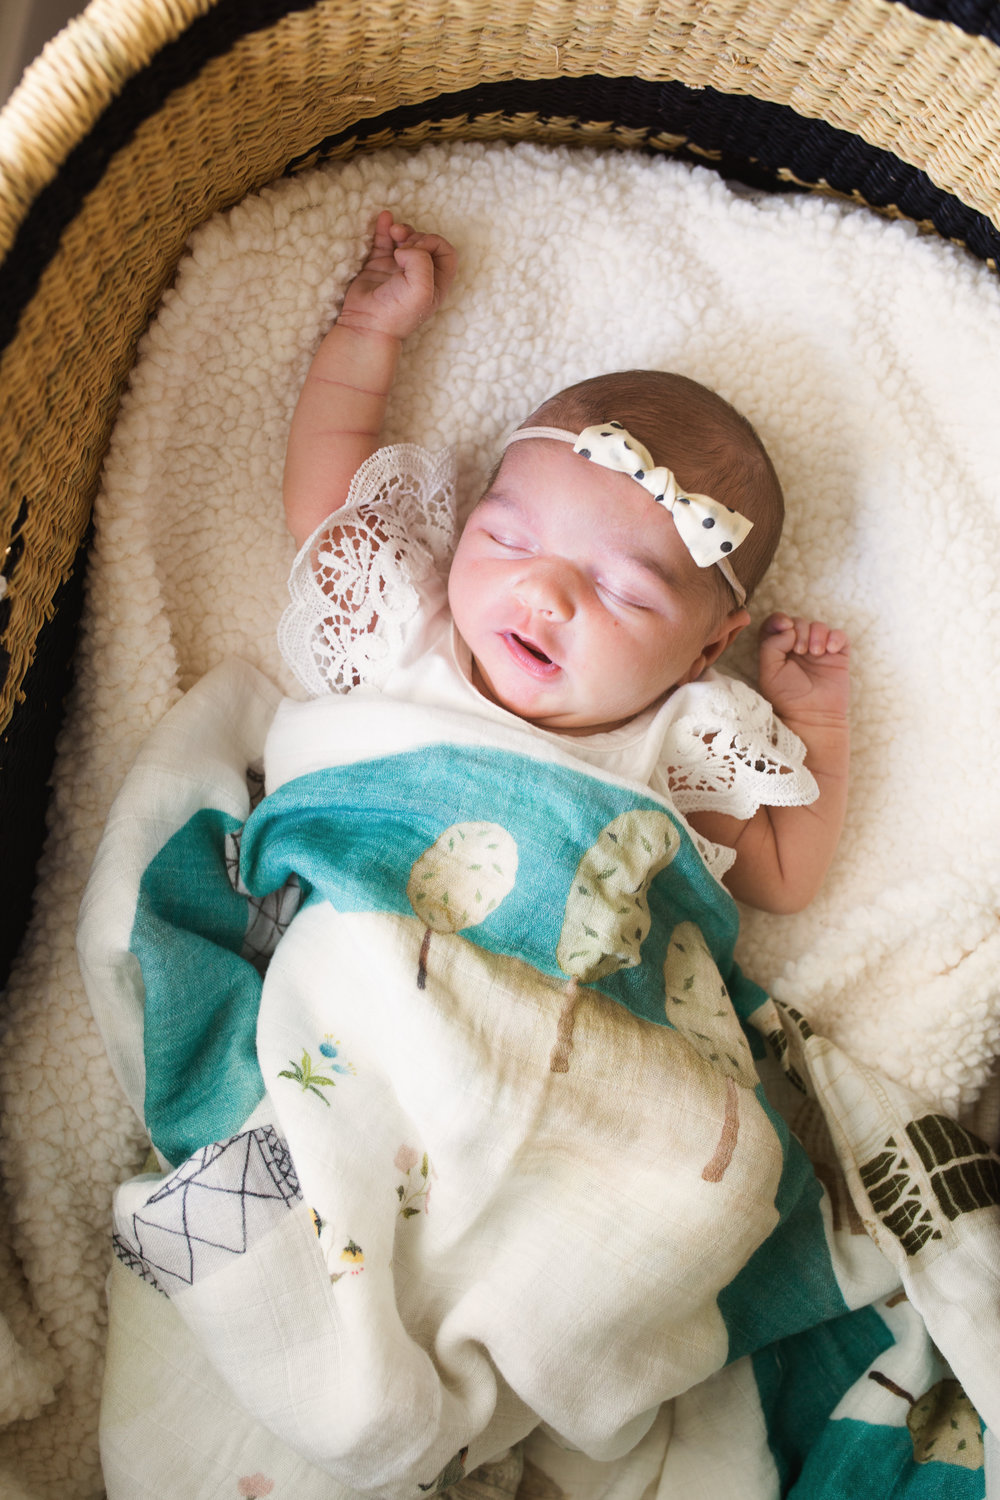 newborn baby girl in bassinet sleeps with one arm above her head